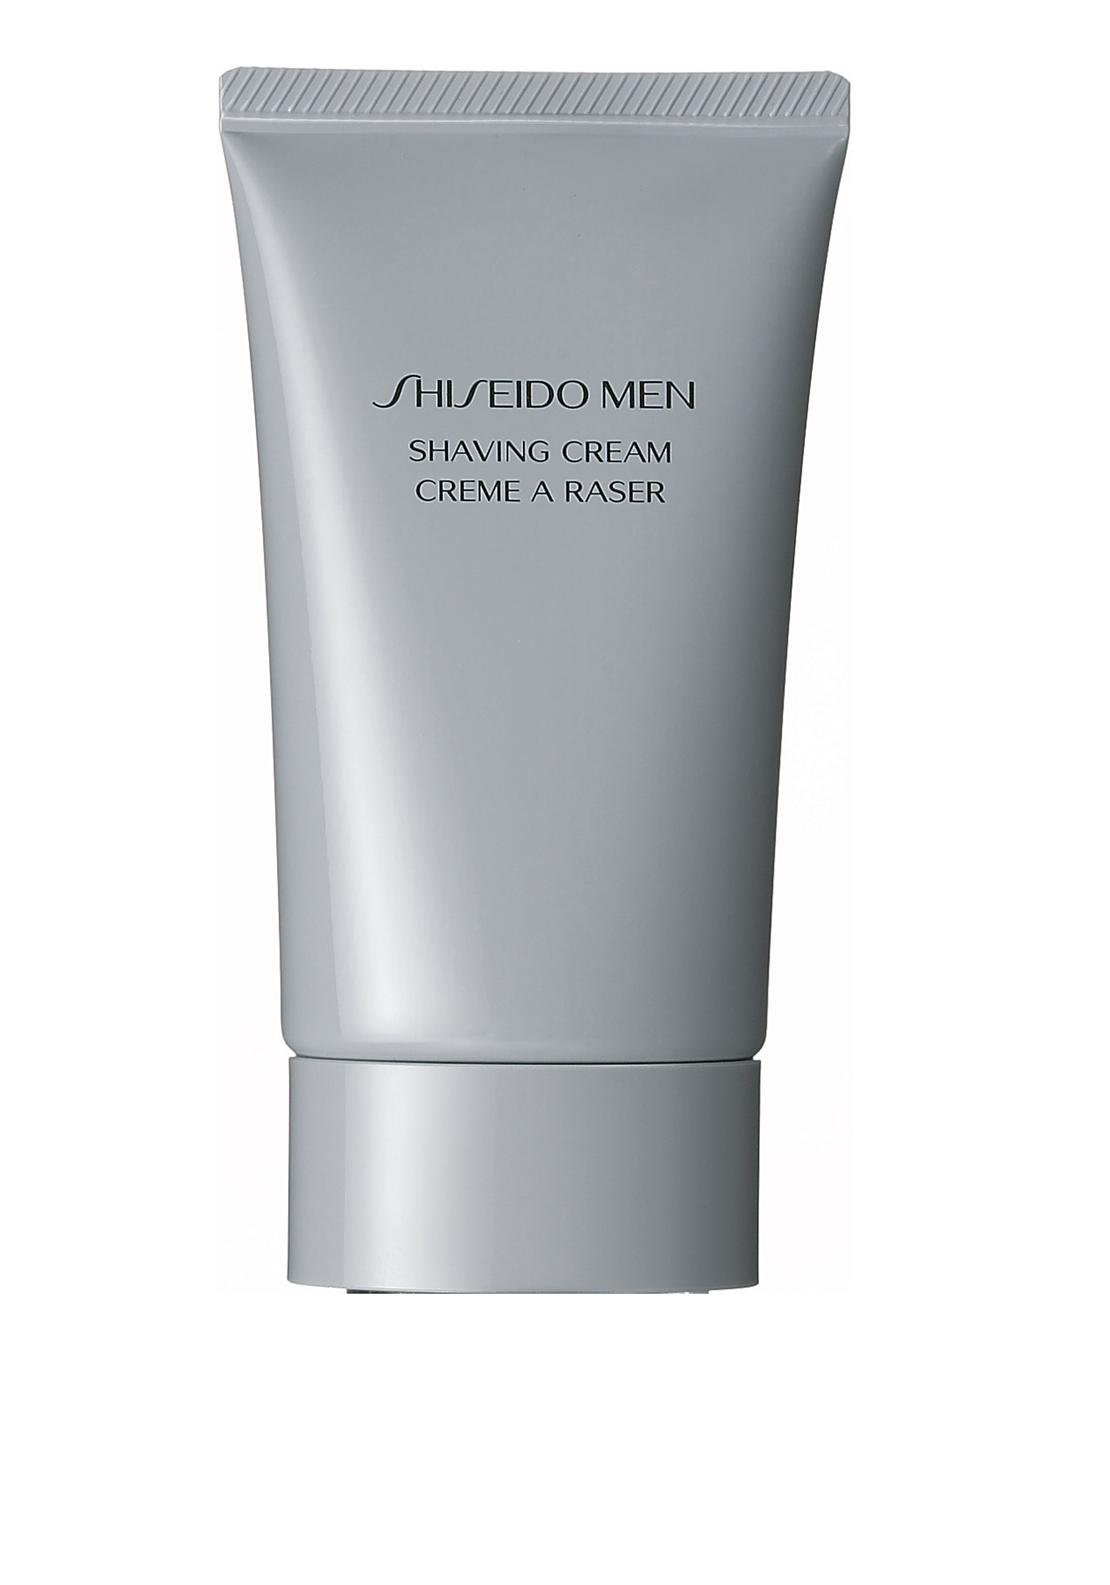 Shiseido Men Shaving Cream with Razor Burn Minimizer, 100ml